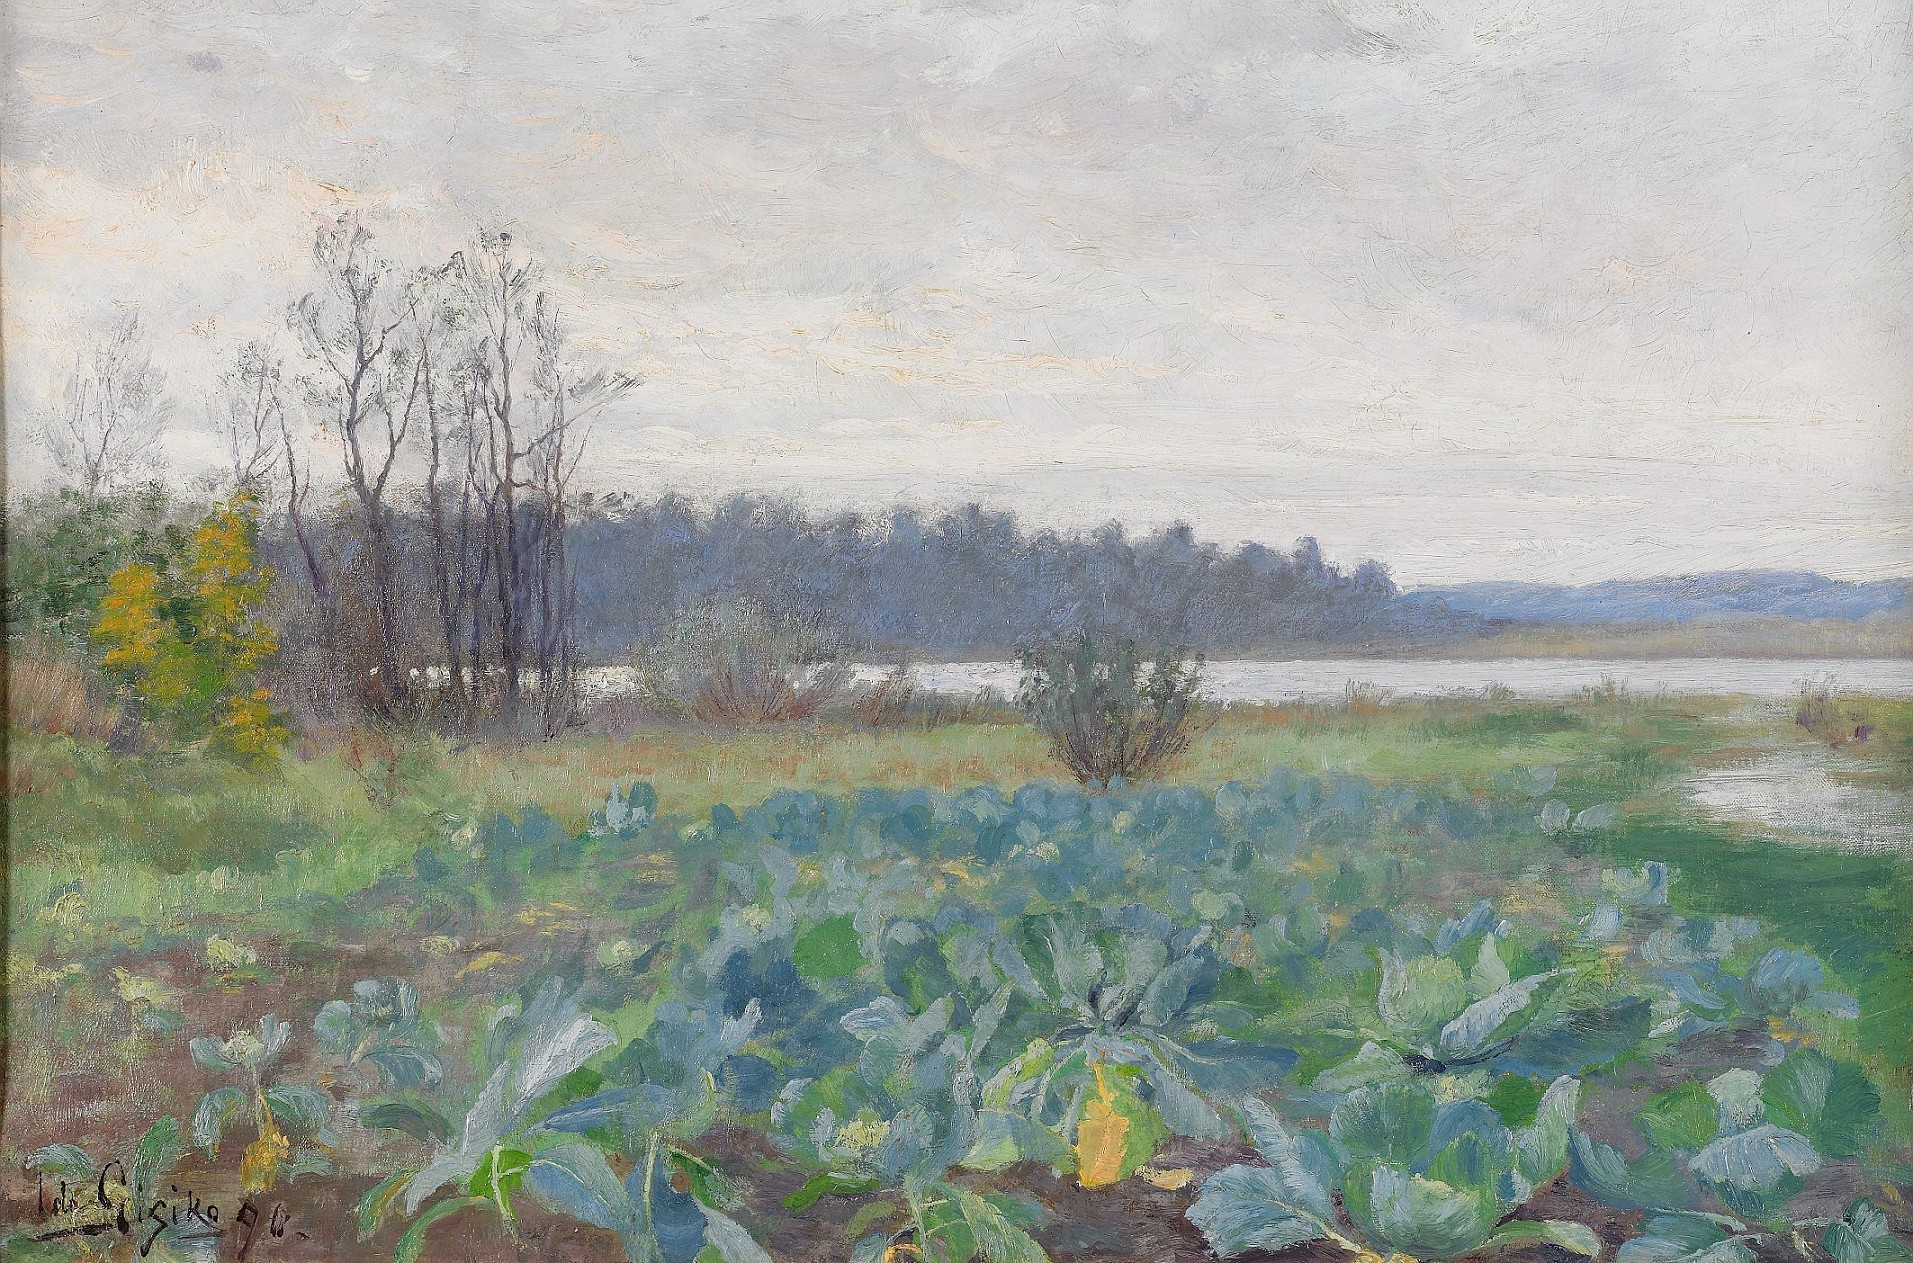 Ida Gisiko, The Cabbage field, 1890 oil